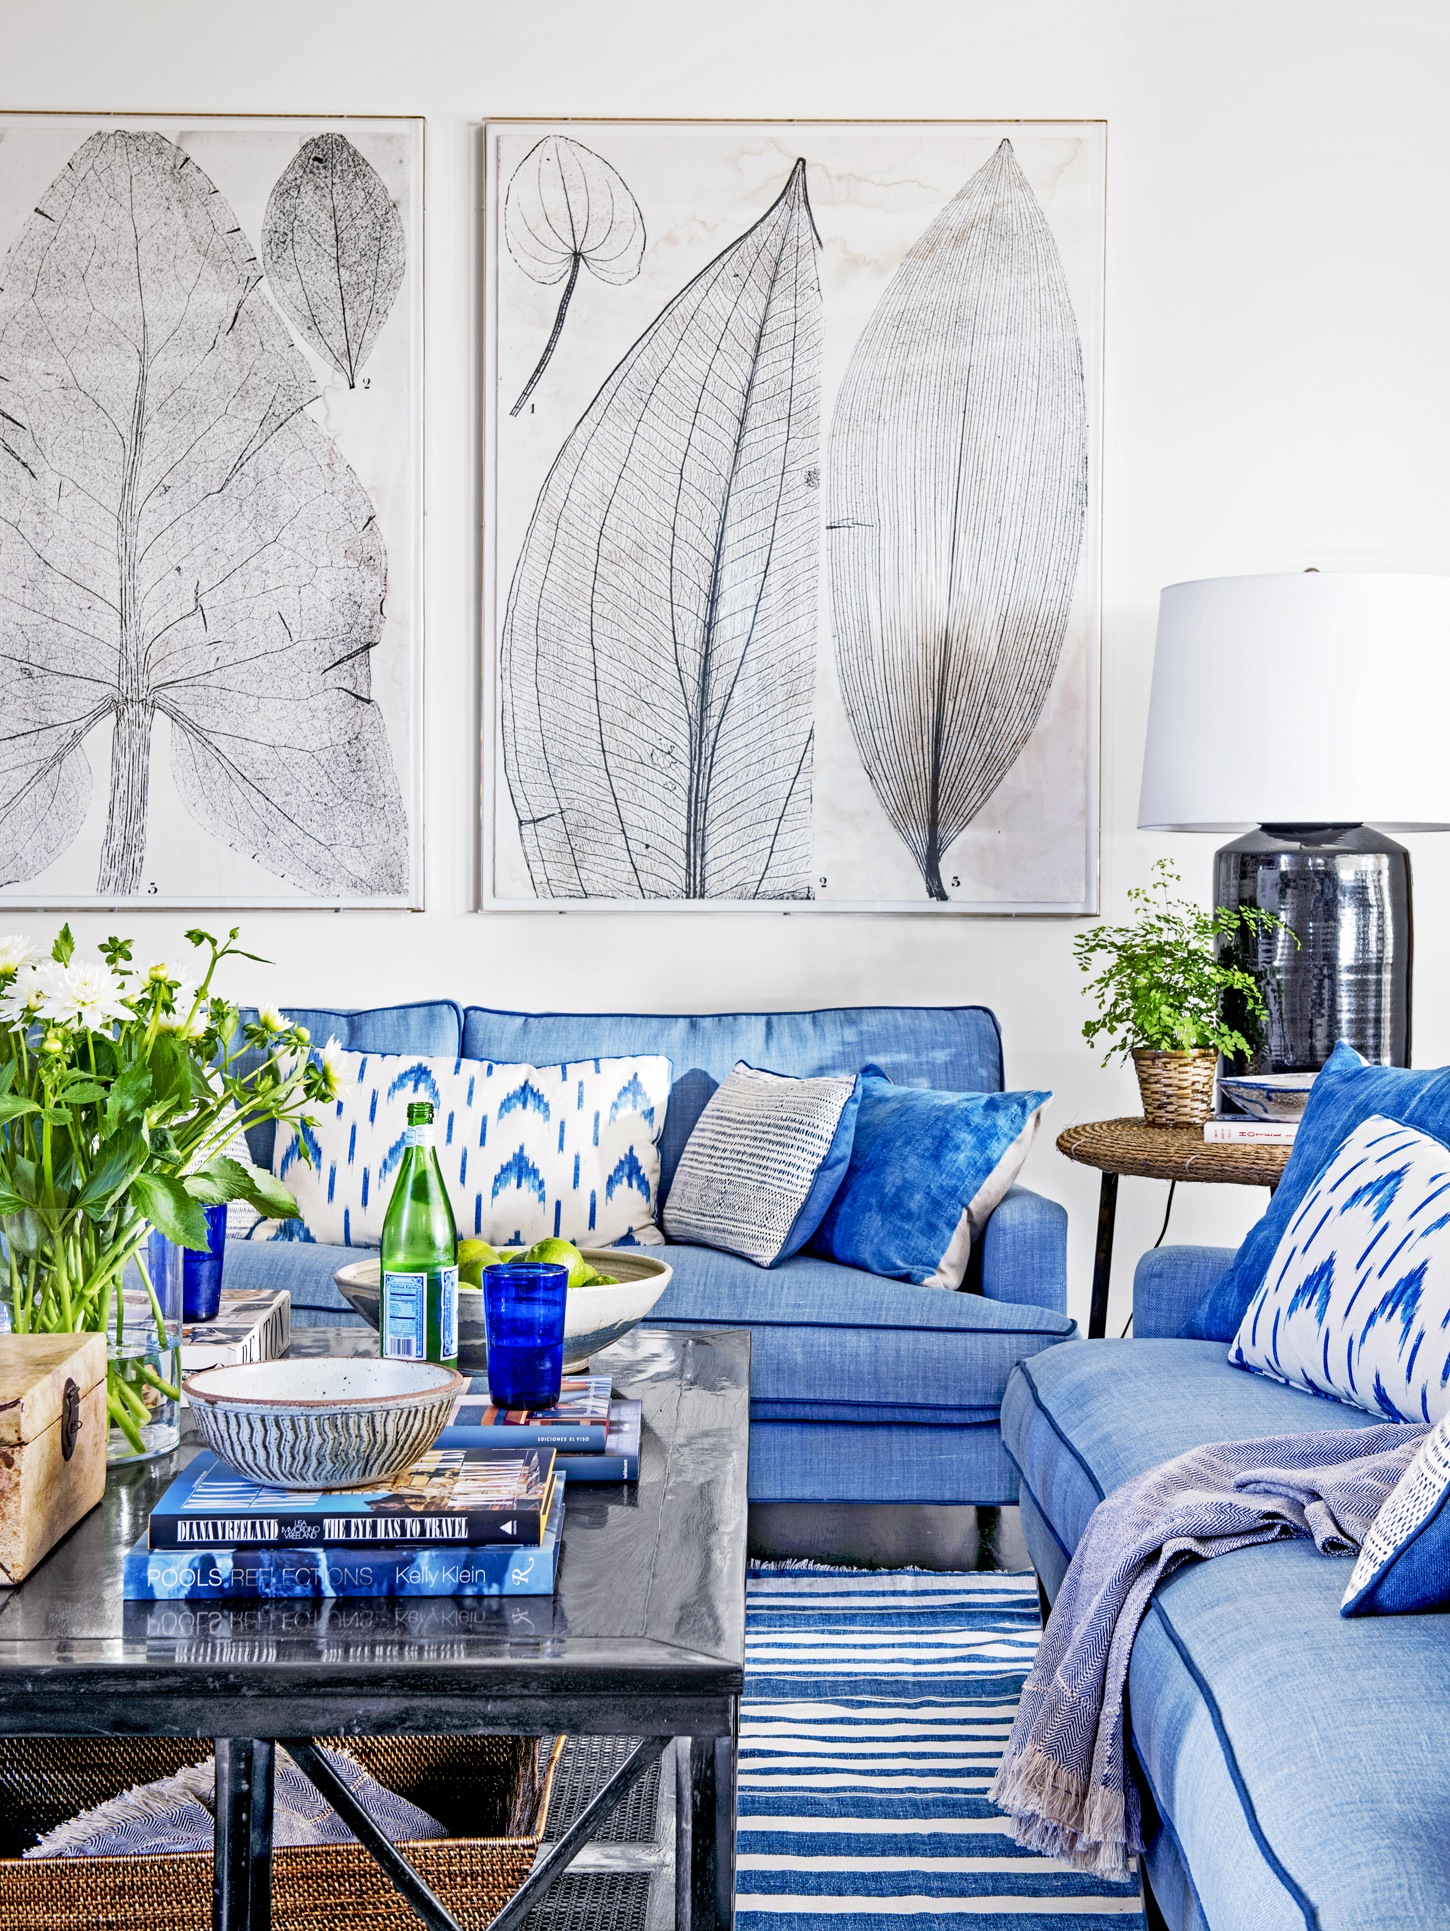 Wall Colour Inspiration: Decorating With Blue And White